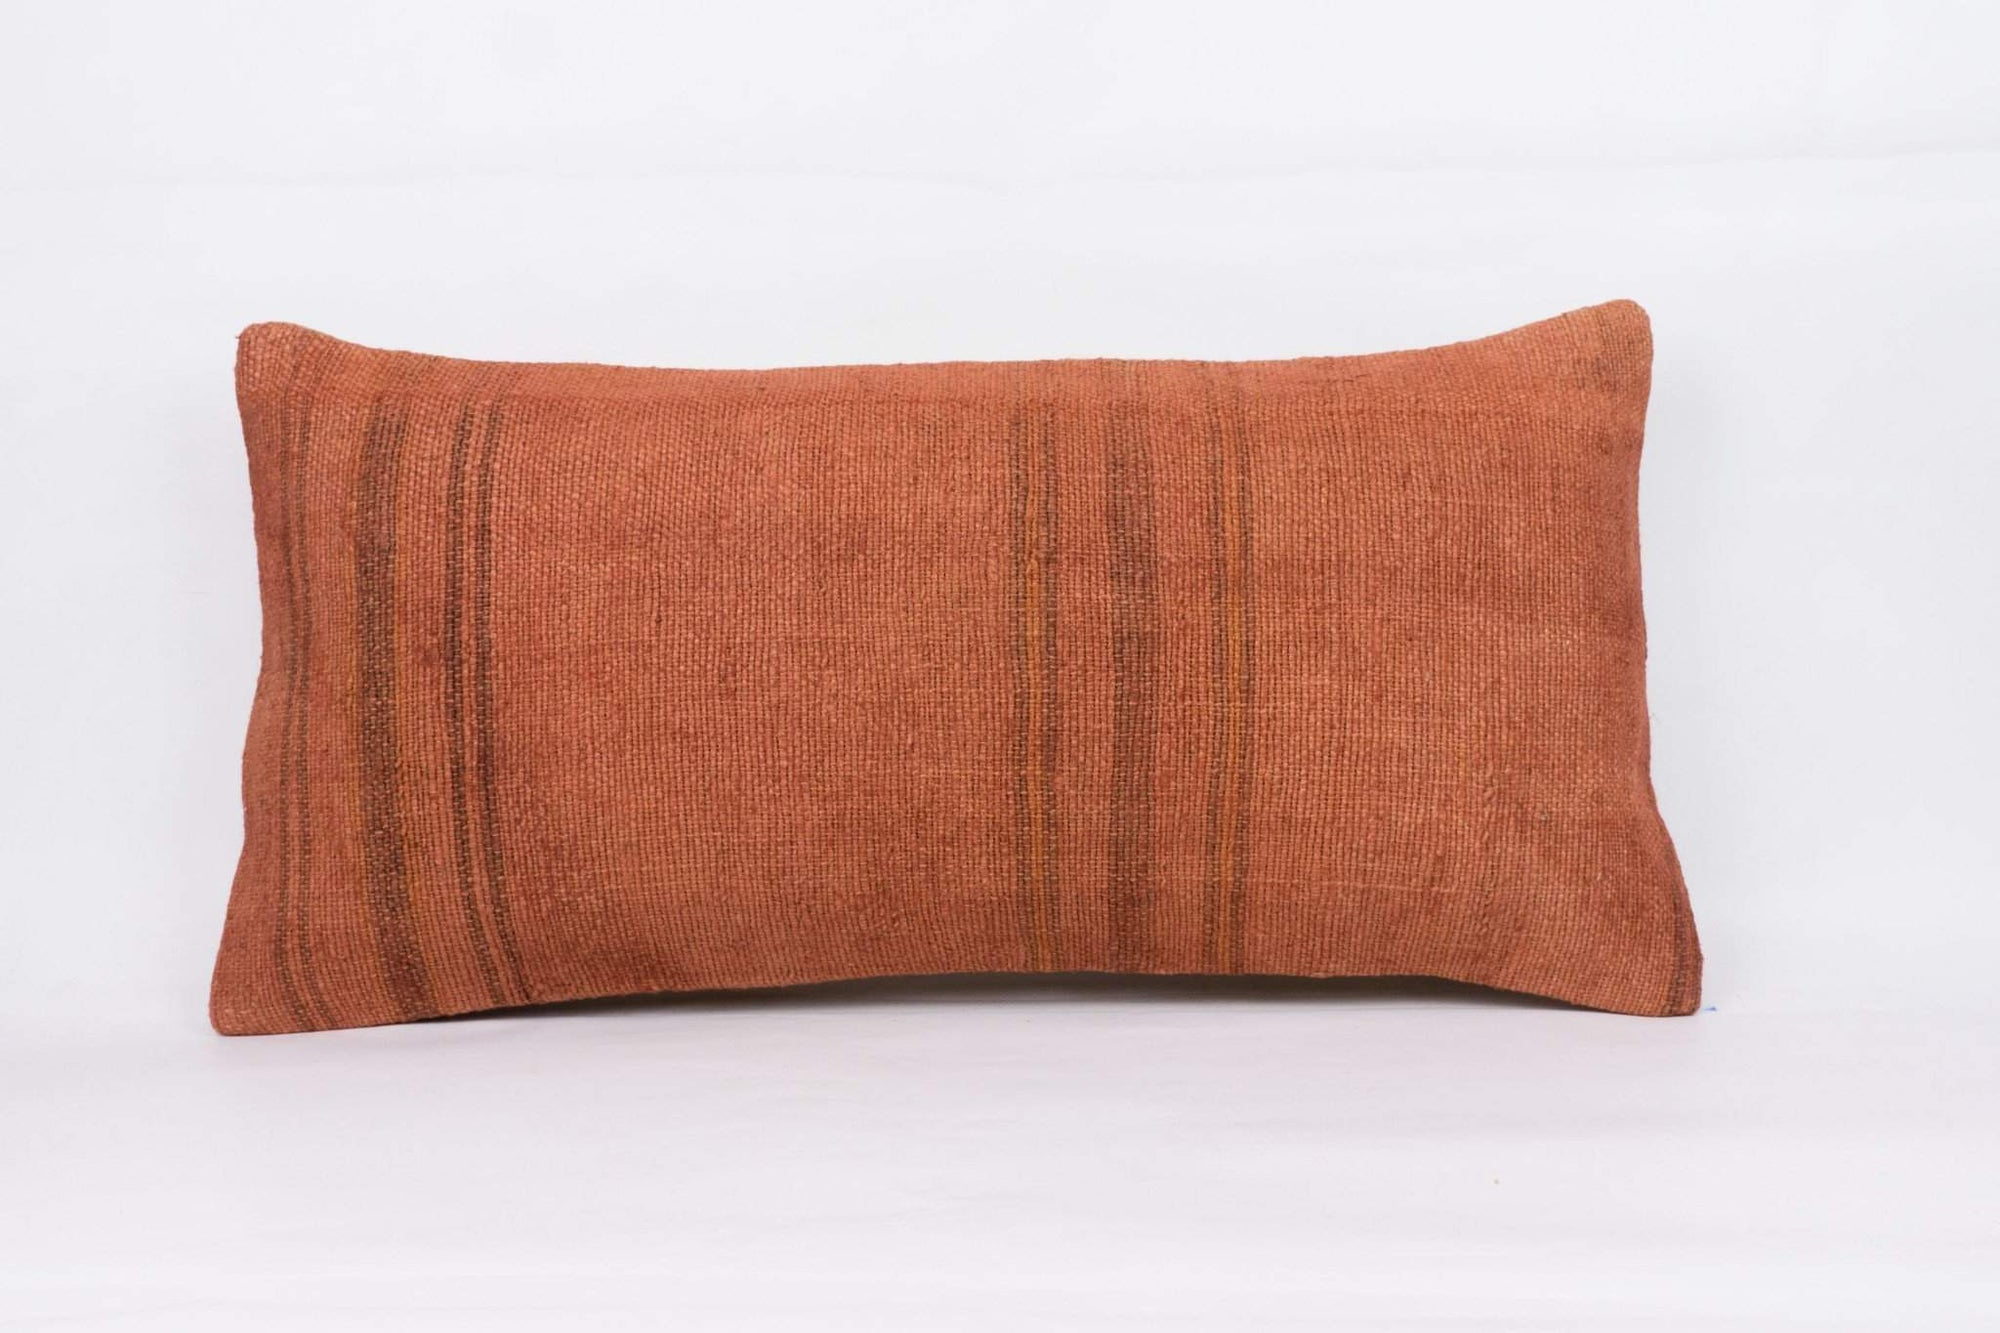 Plain Brown Kilim Pillow Cover 12x24 4166 - kilimpillowstore  - 1